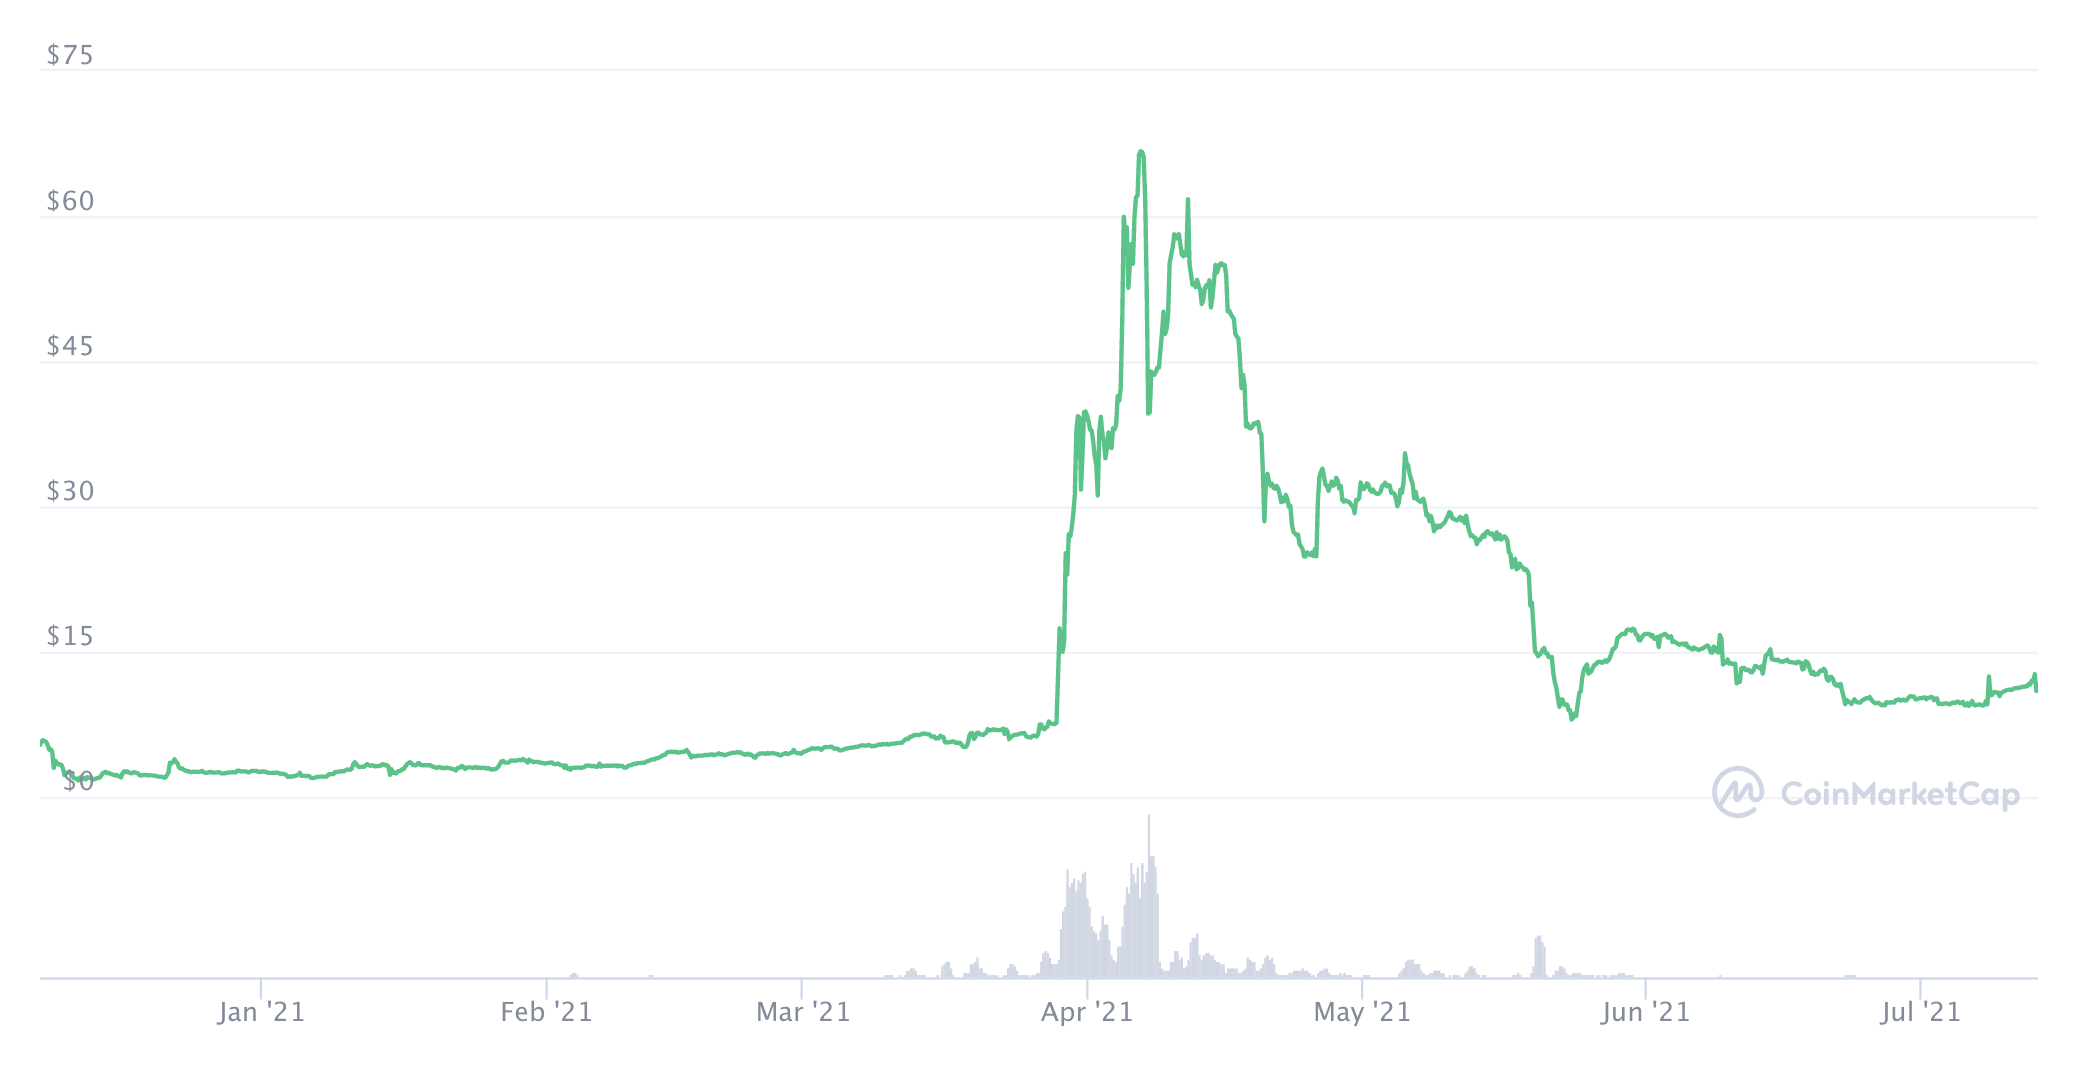 Mobilecoin's price, July 2021